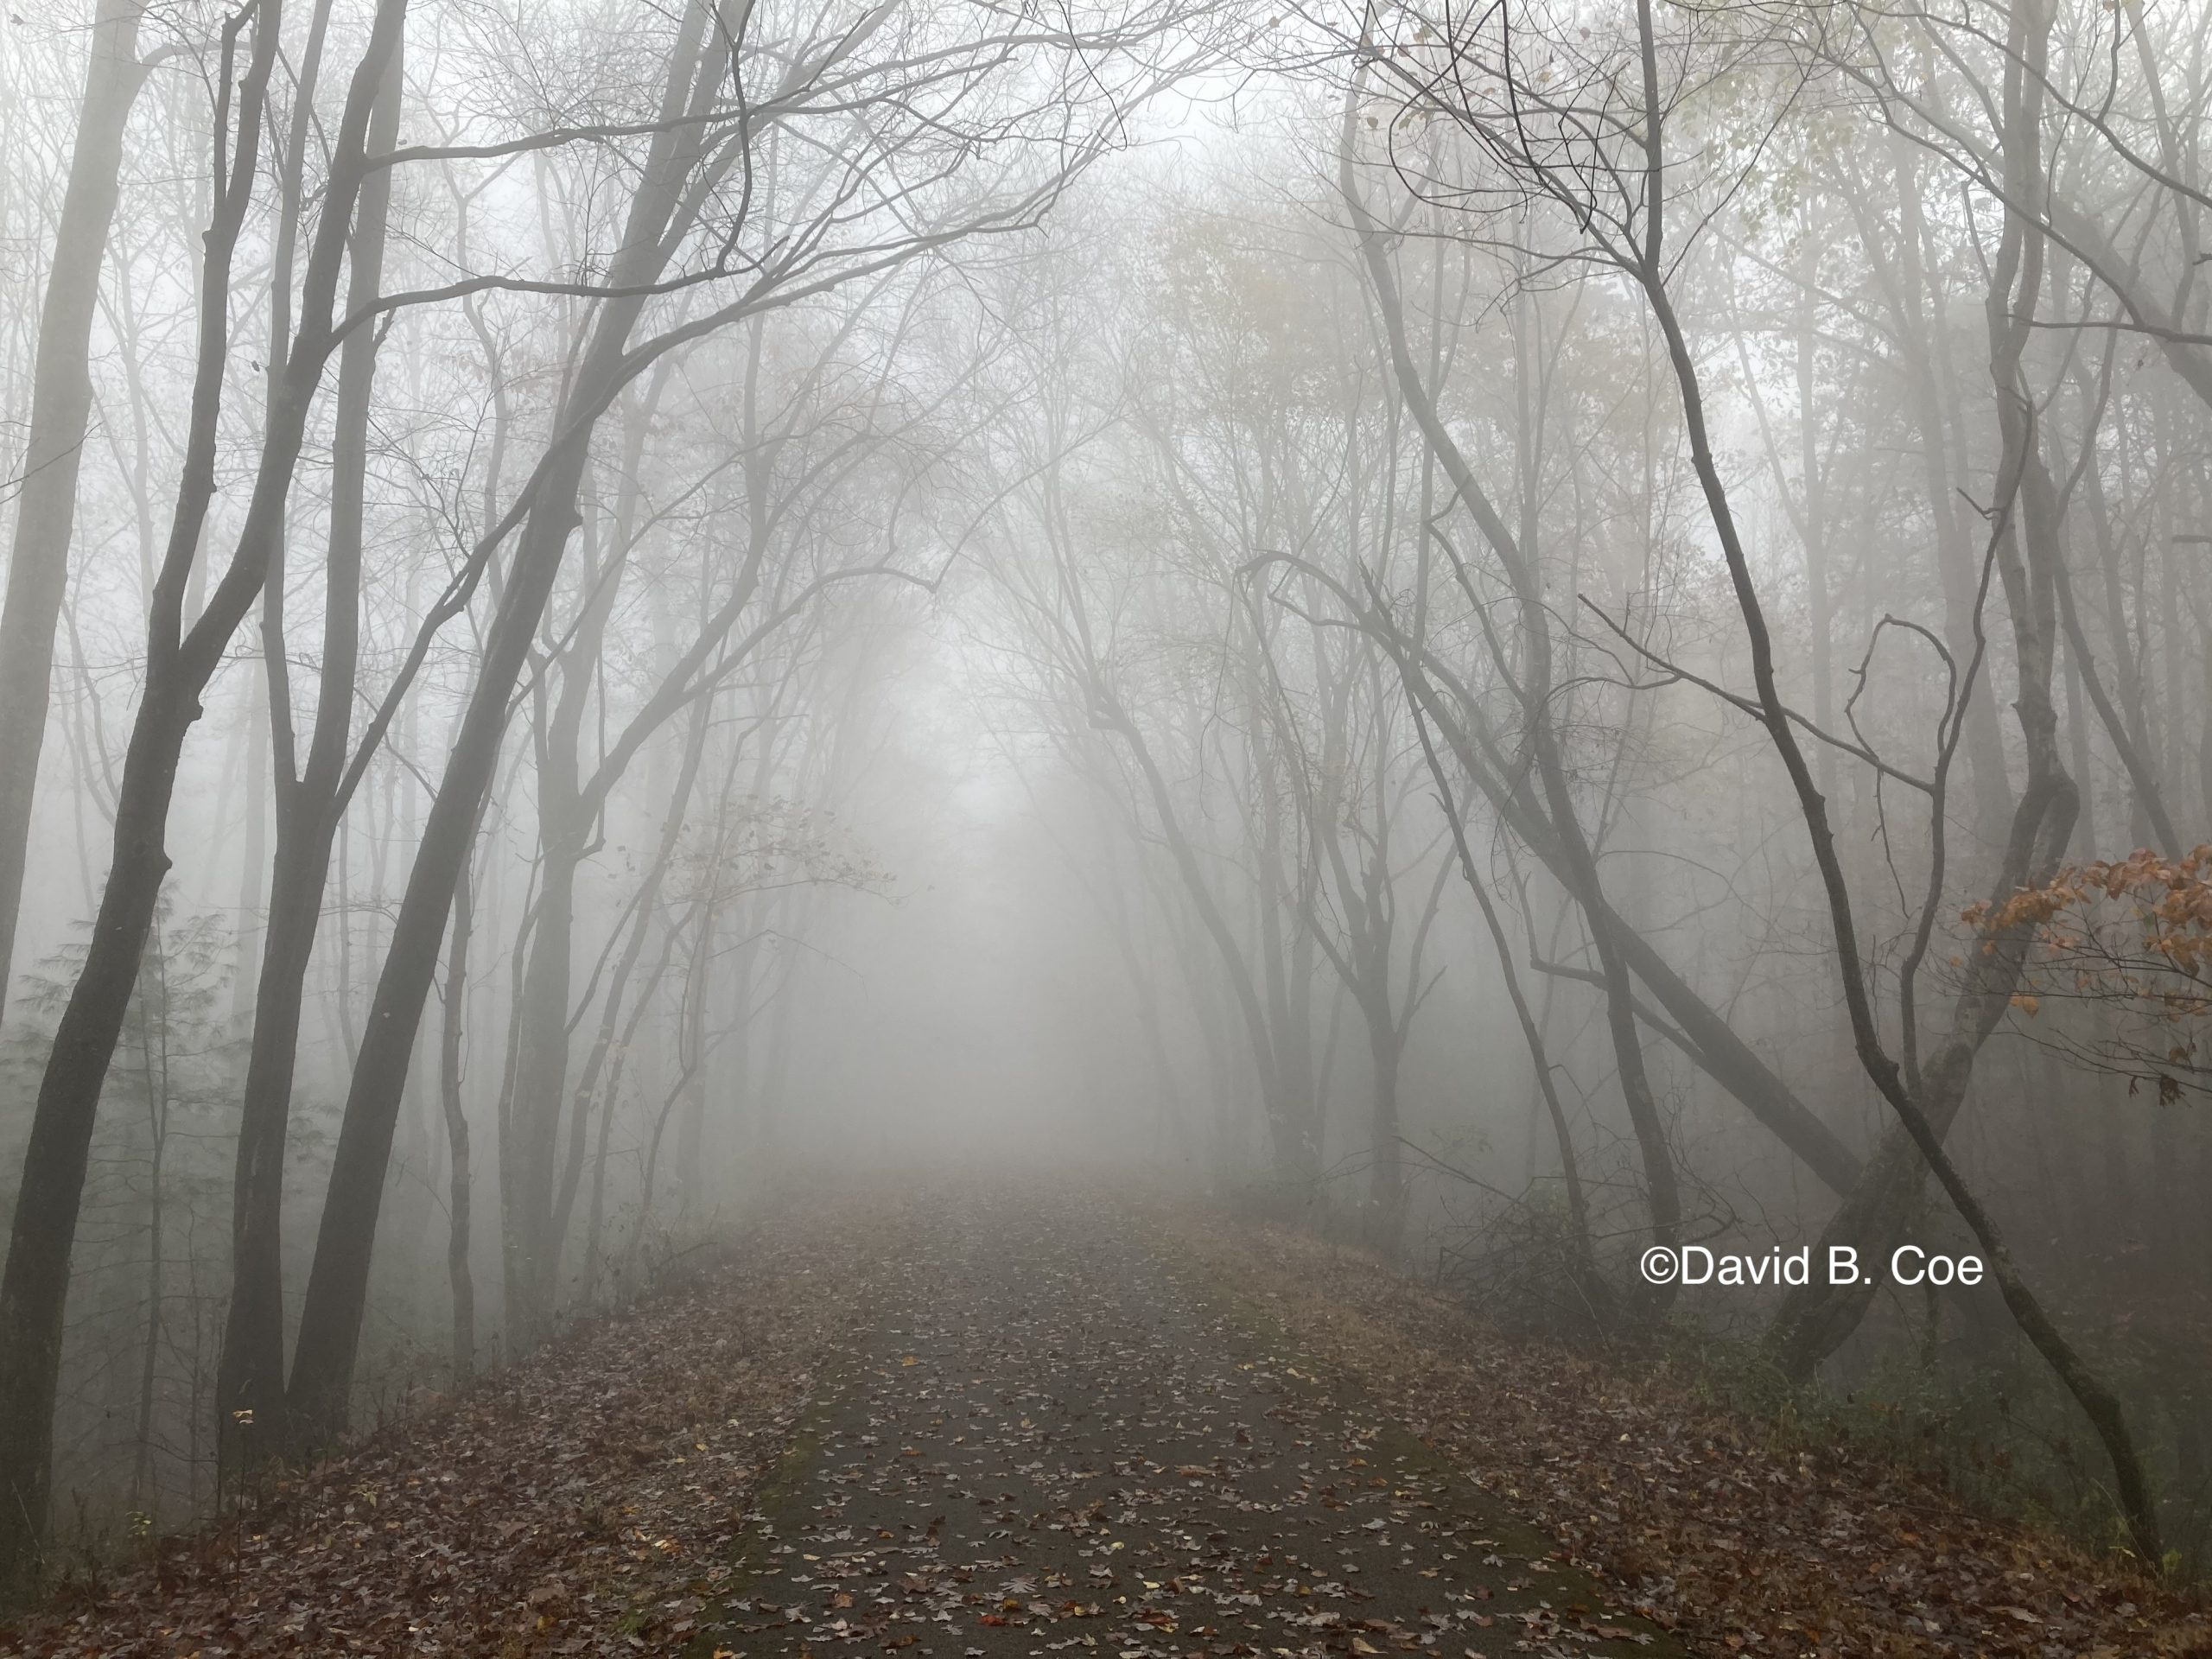 Foggy Path, by David B. Coe